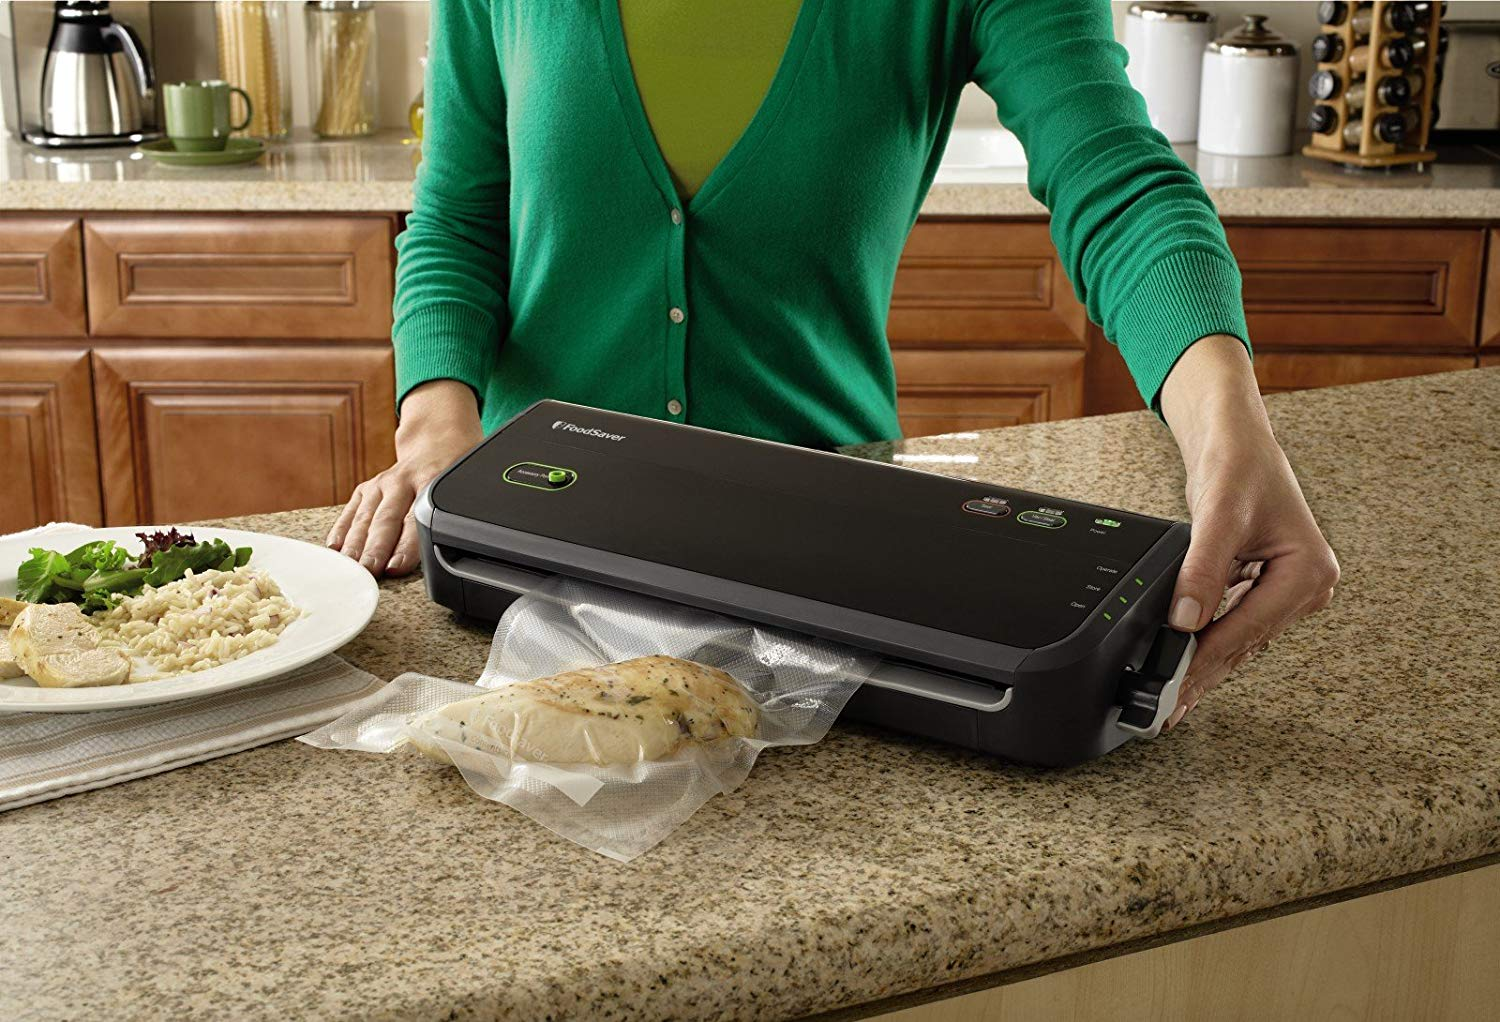 This is the FoodSaver FM2000-000 vacuum sealing system.